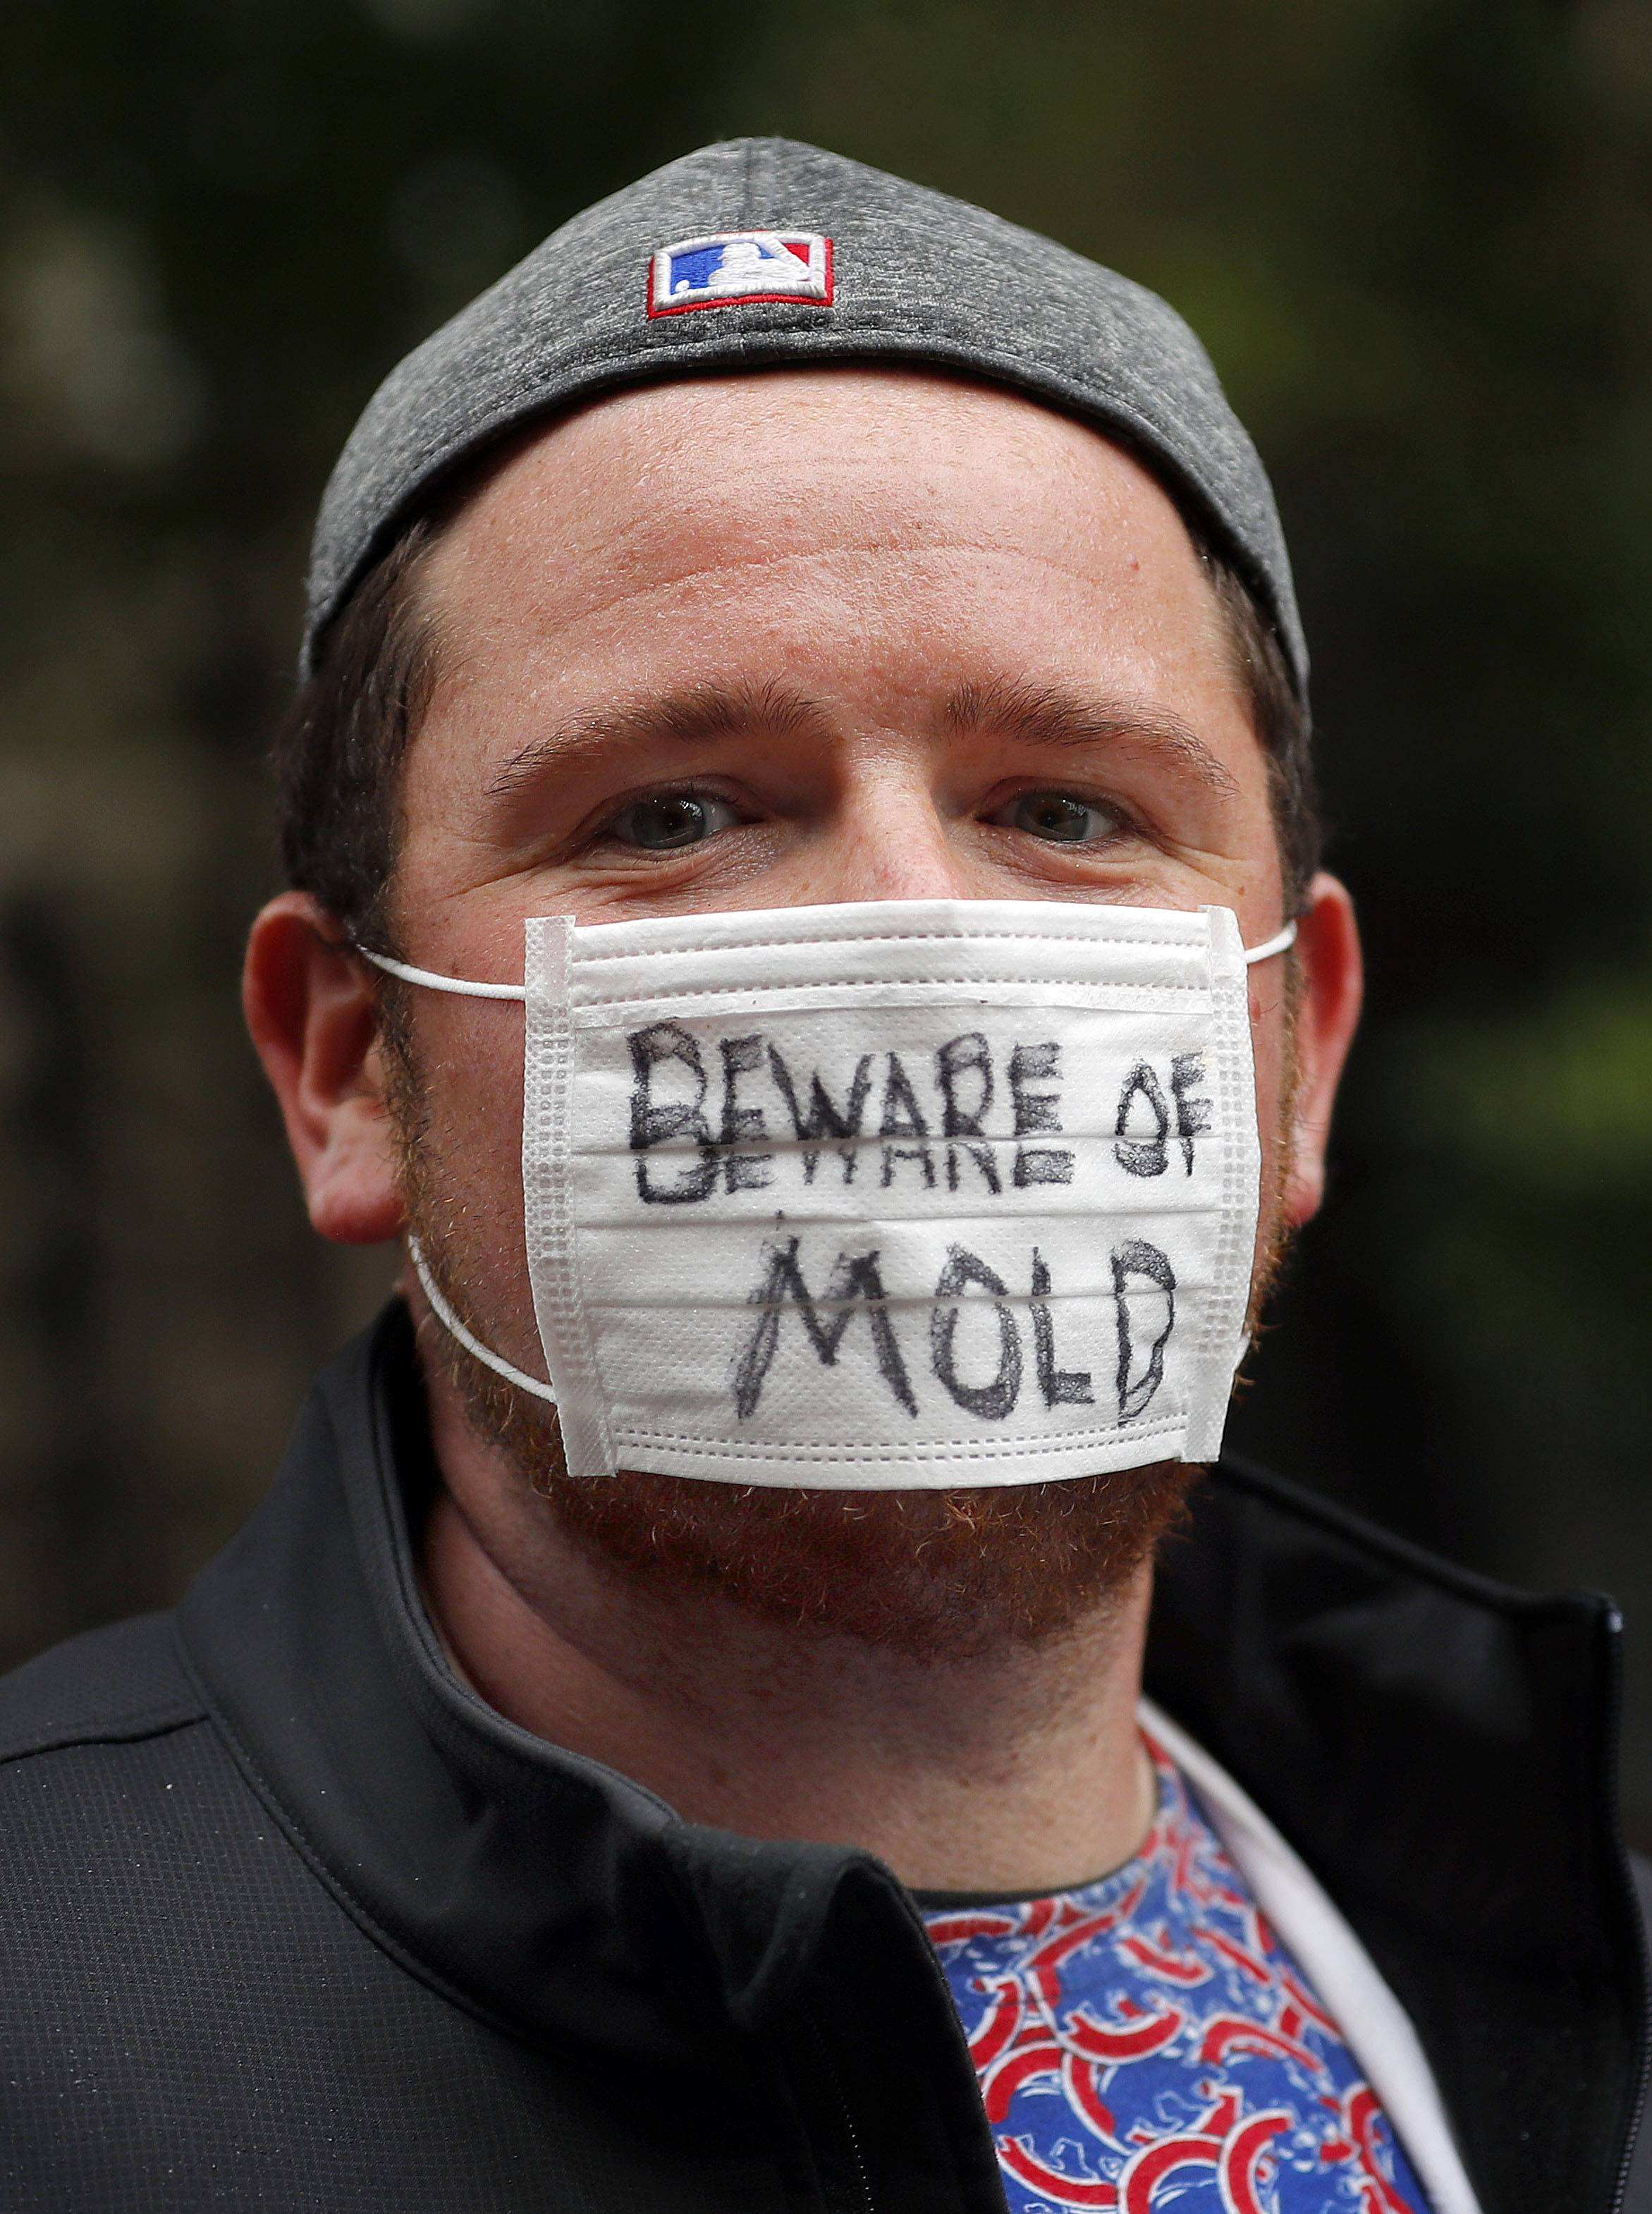 Steve Lundy/slundy@dailyherald.comRyan Denk of Rockford wears a mask that says Beware of mold prior to Game 4 of the National League division series at Wrigley Field in Chicago Wednesday, October 11, 2017.